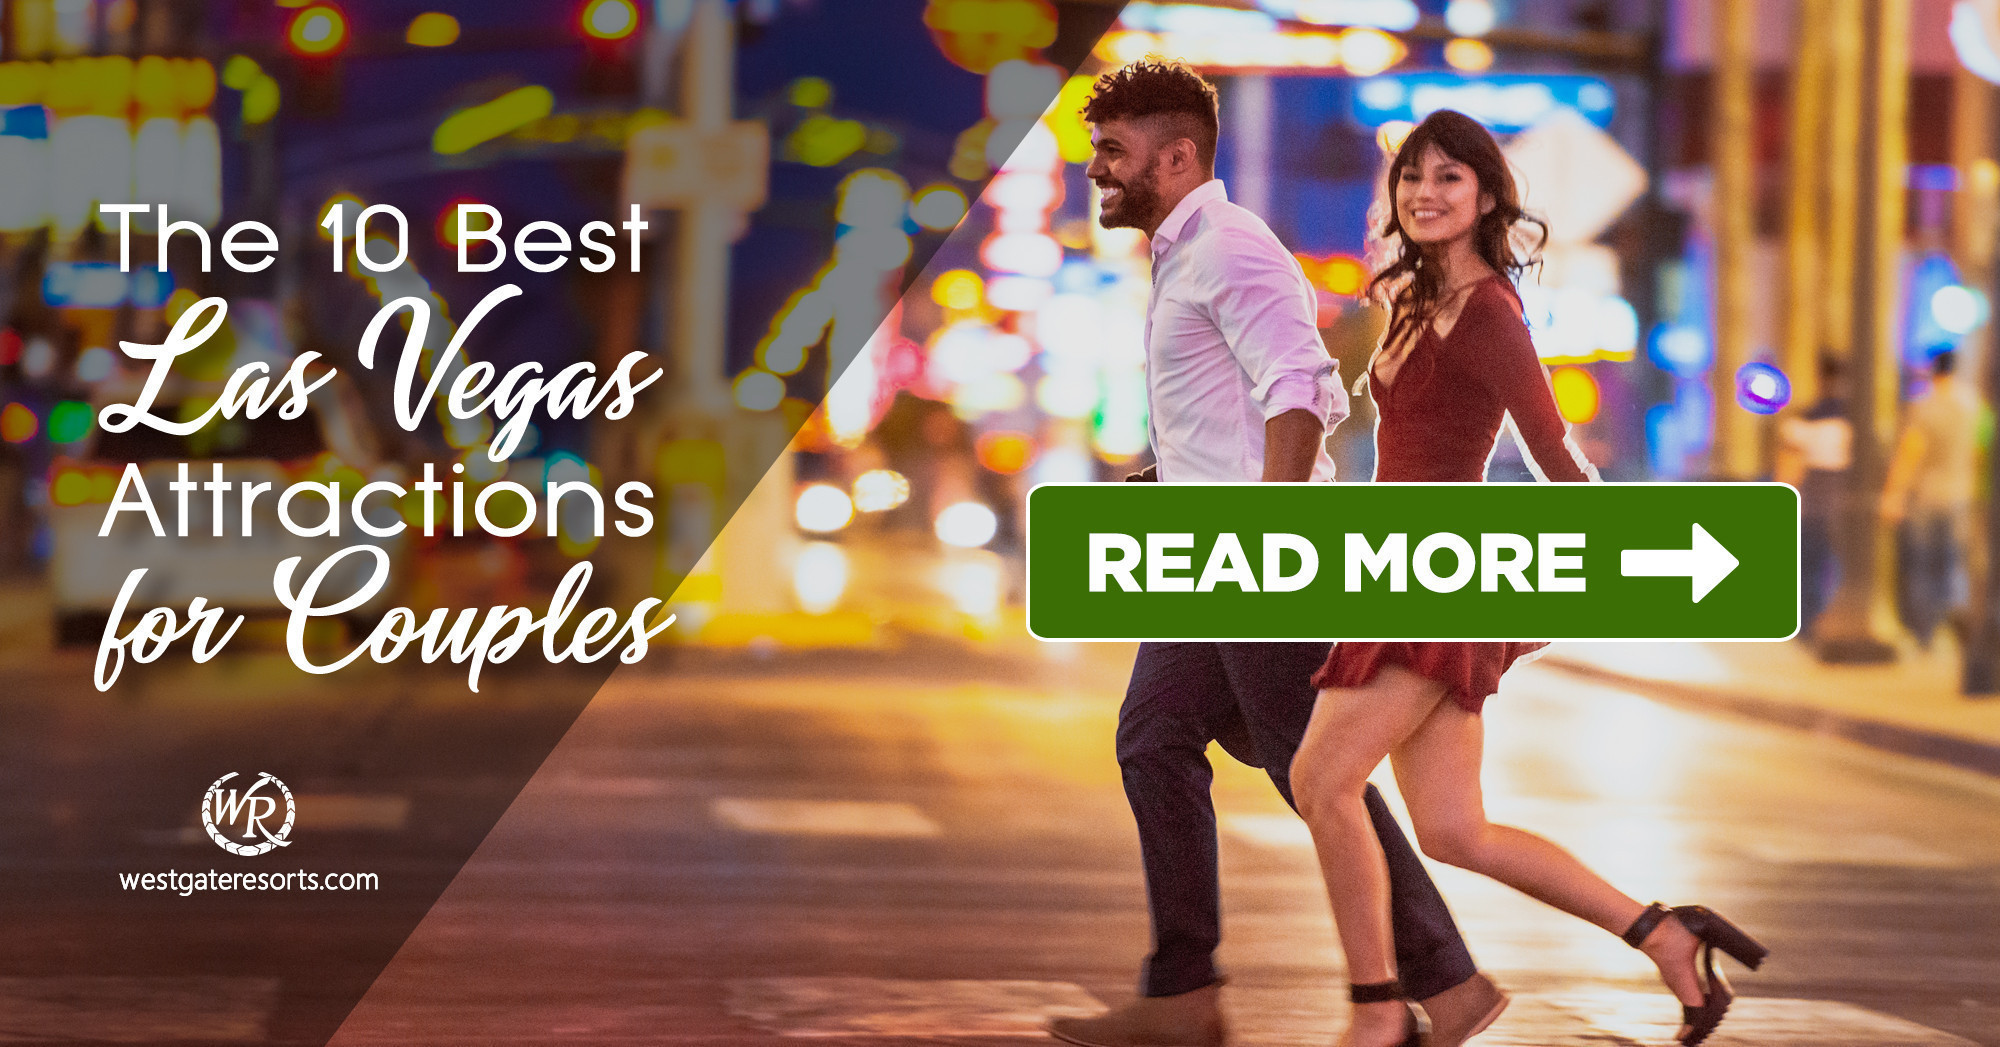 The 10 Best Las Vegas Attractions for Couples | Things to do in Las Vegas for couples